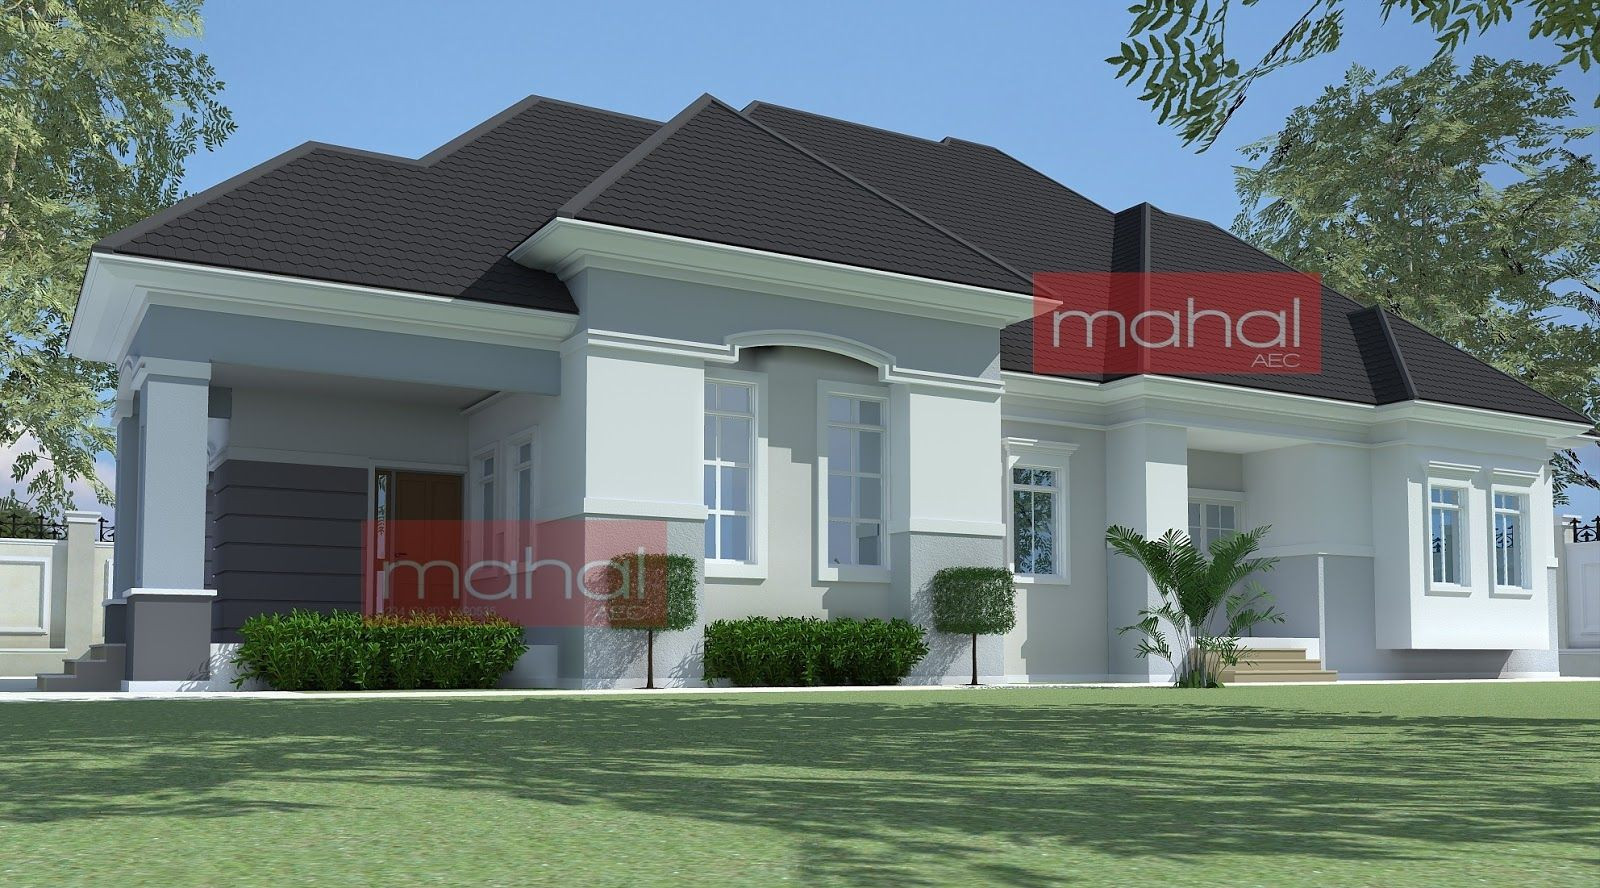 Illustrate Home Designs 4 Bedroom Bungalow Plan In Nigeria 4 Bedroom Bungalow